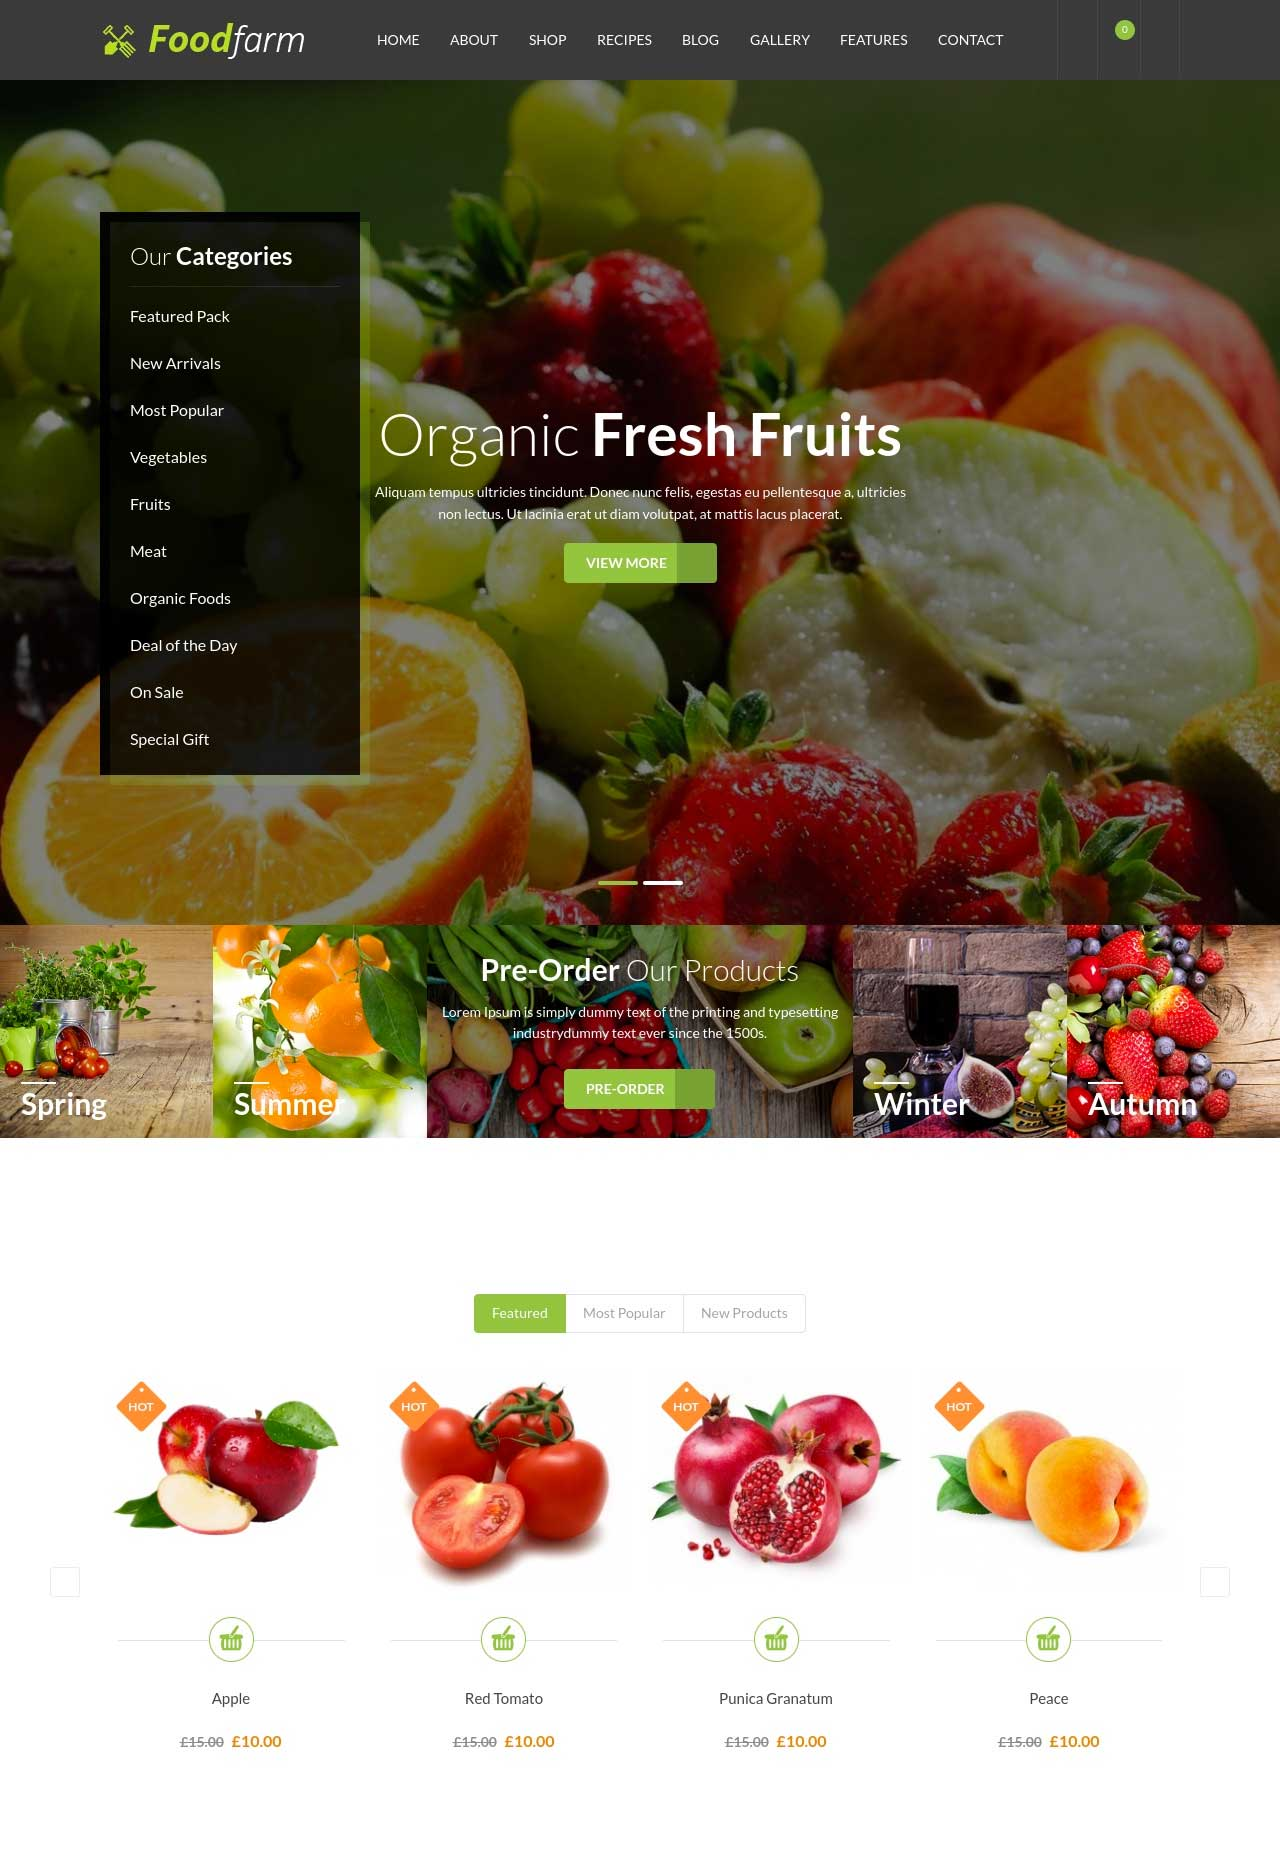 foodfarm-wordpress-theme-for-farm-farm-services-and-organic-food-store